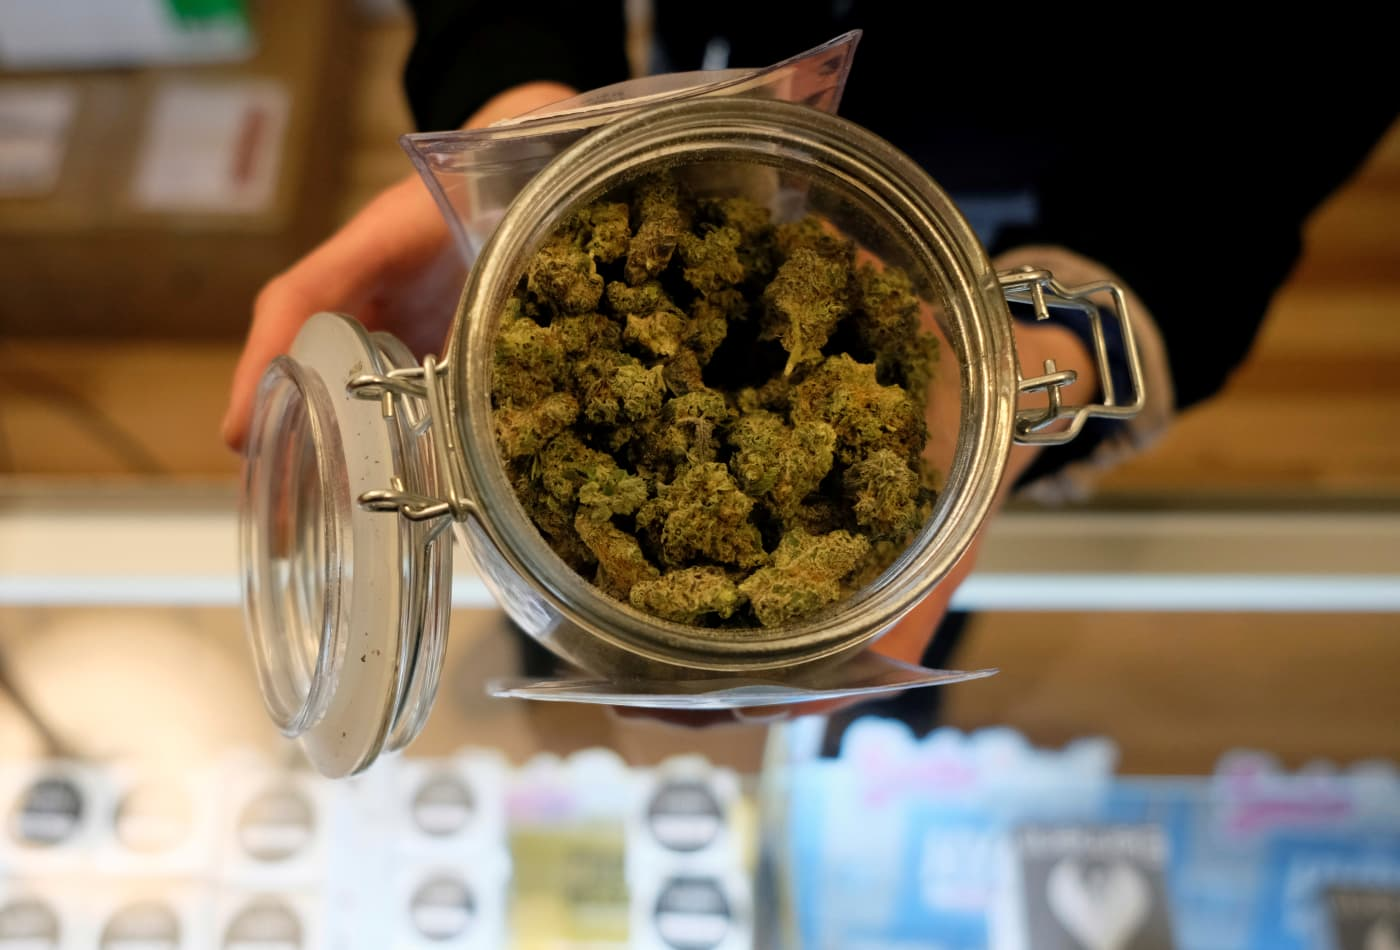 Legal cannabis industry sees record sales as customers facing coronavirus crisis stock up